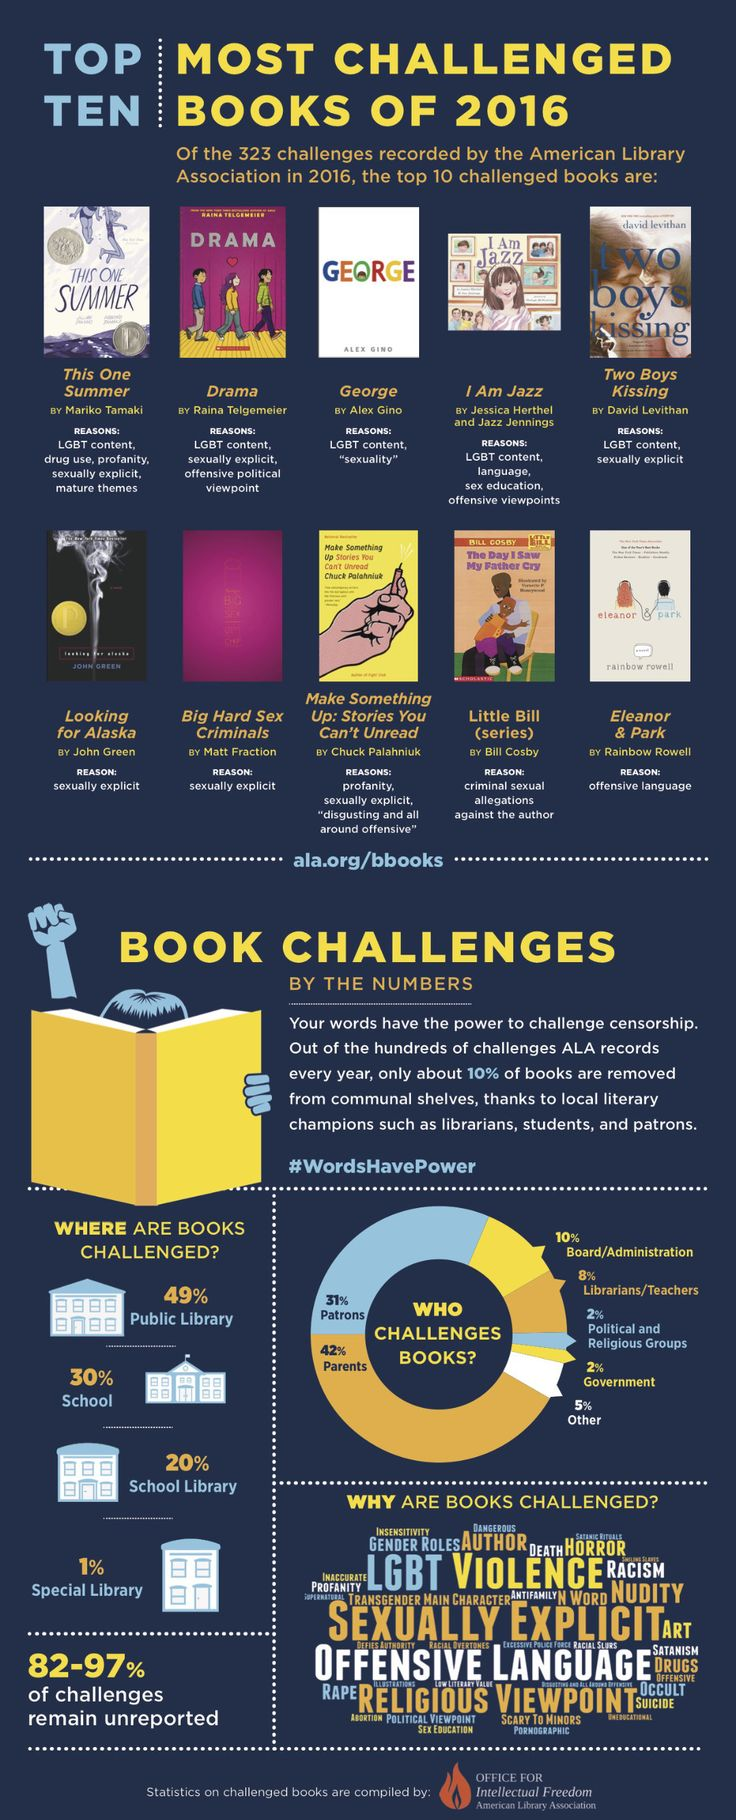 2016 book challenges by the numbers / helpful infographic from American Library Association